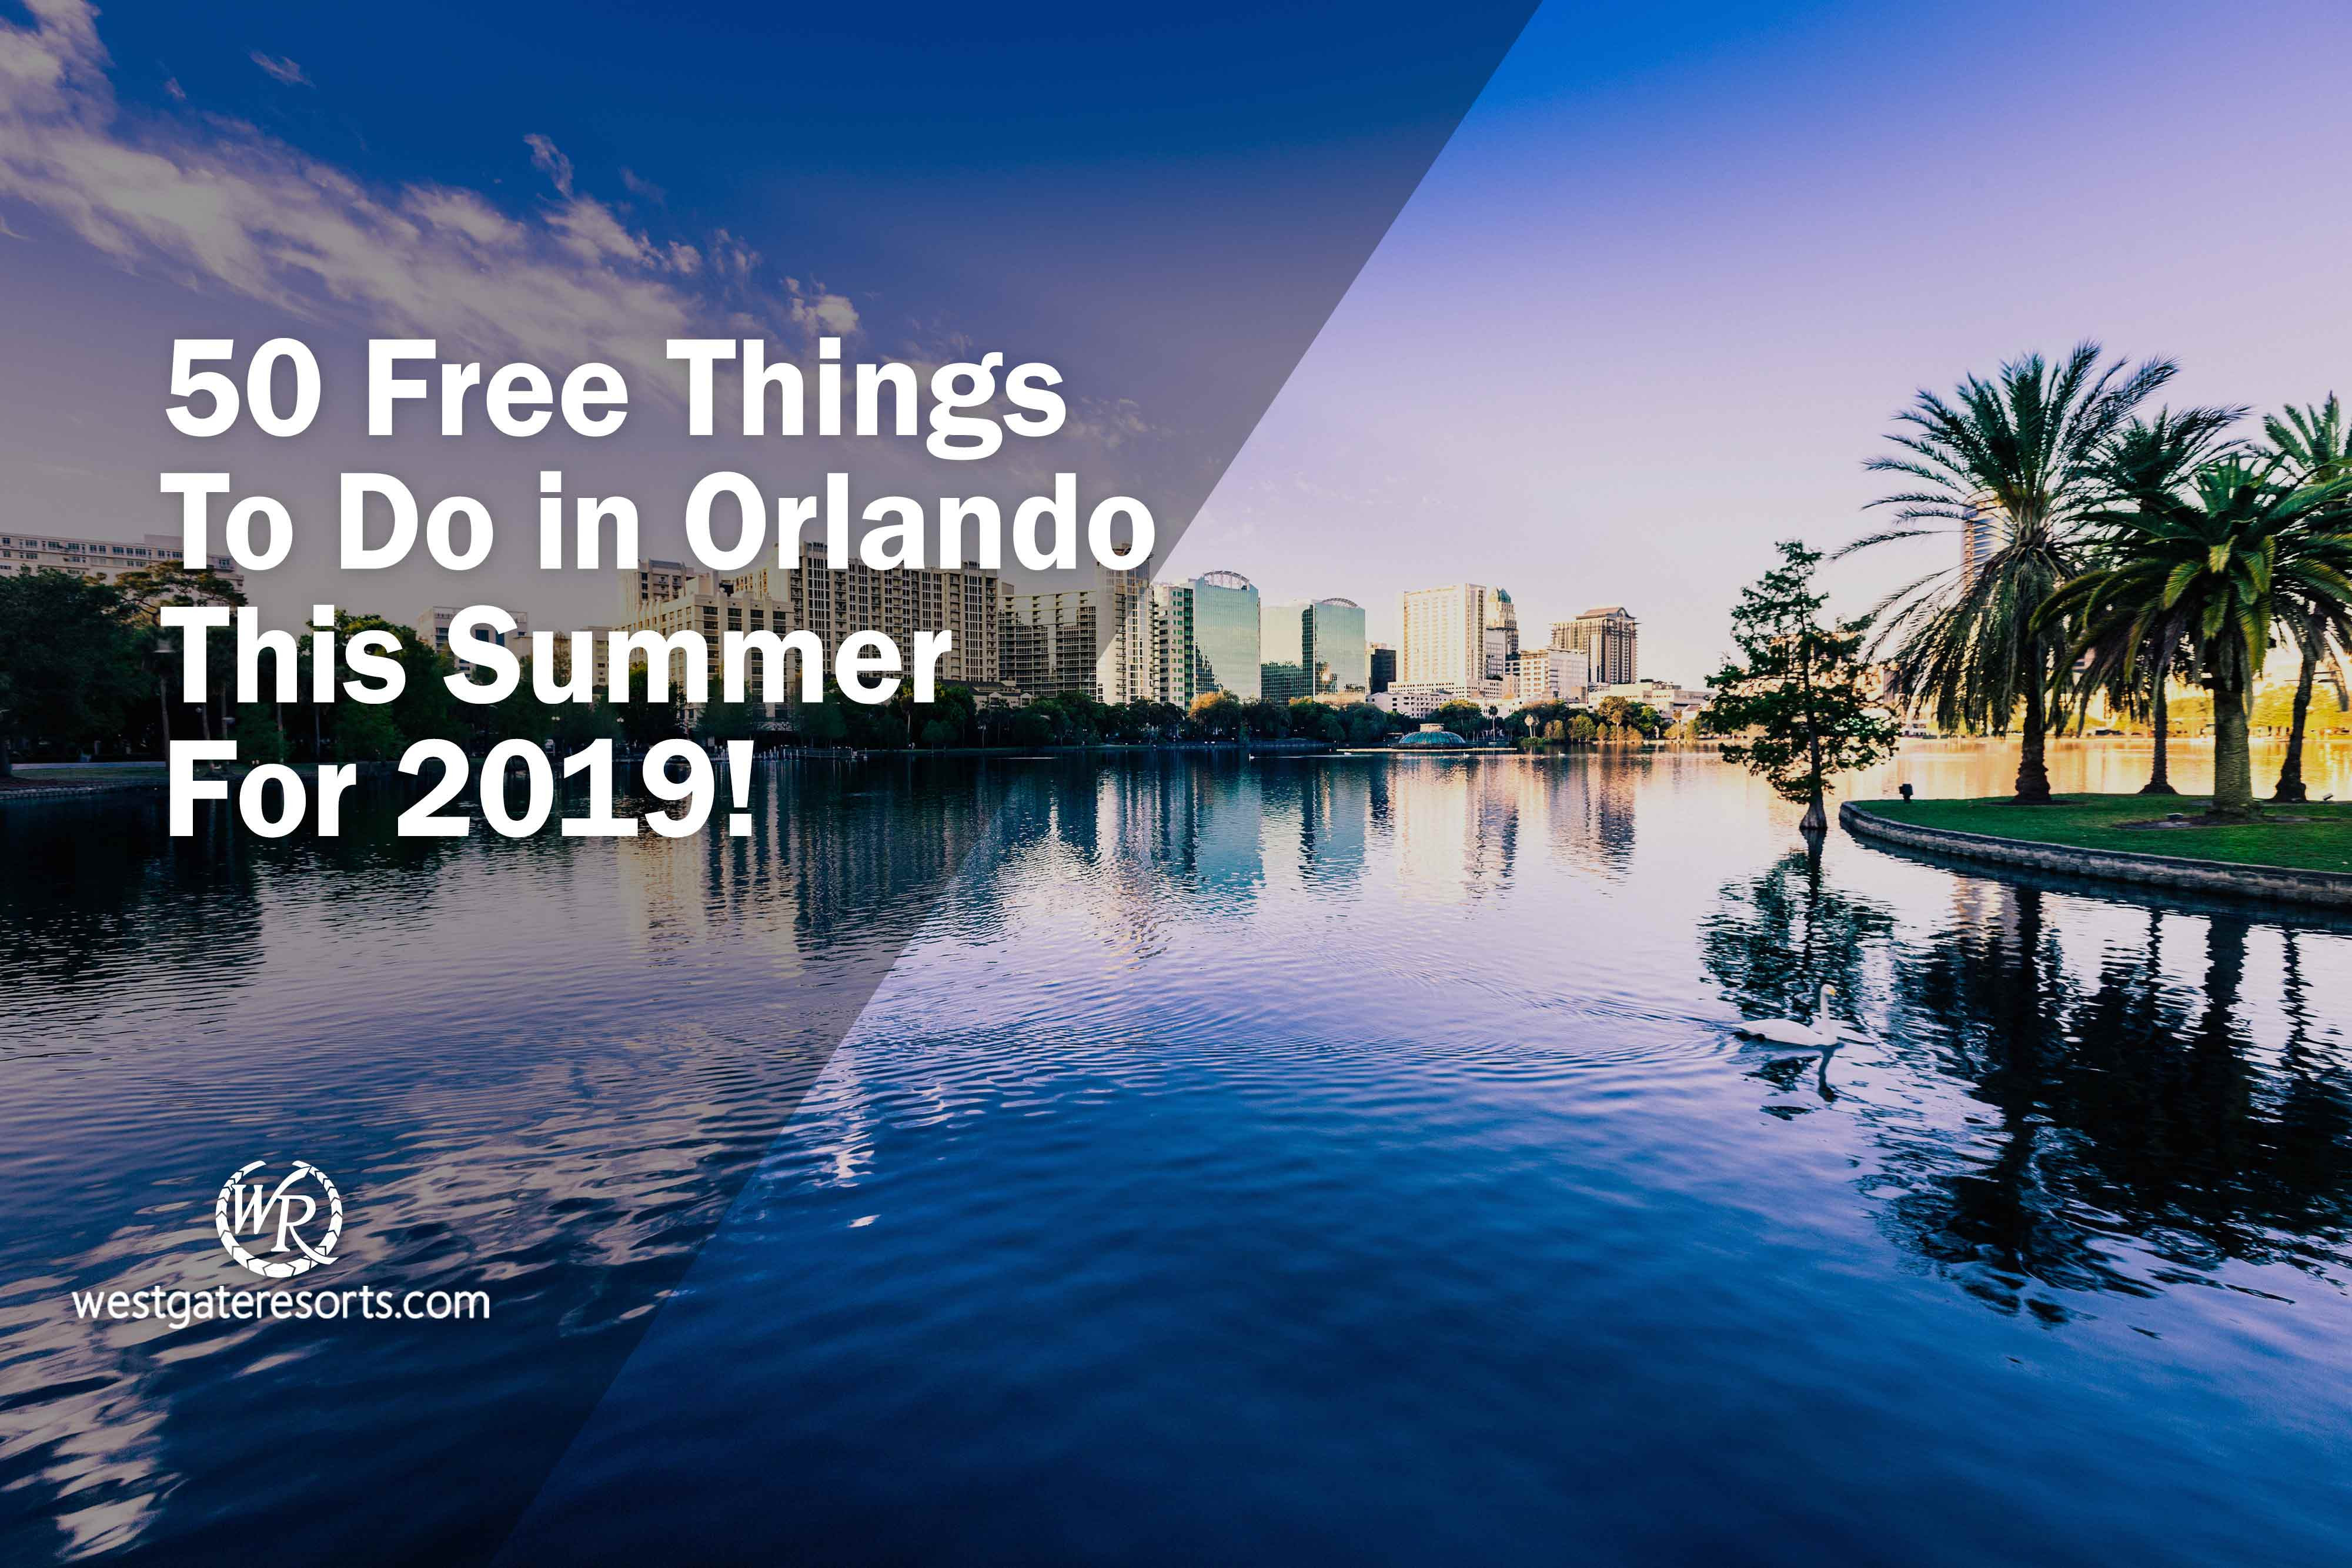 50 Free Things To Do in Orlando This Summer For 2019! | Free And Inexpensive Things To Do In Orlando